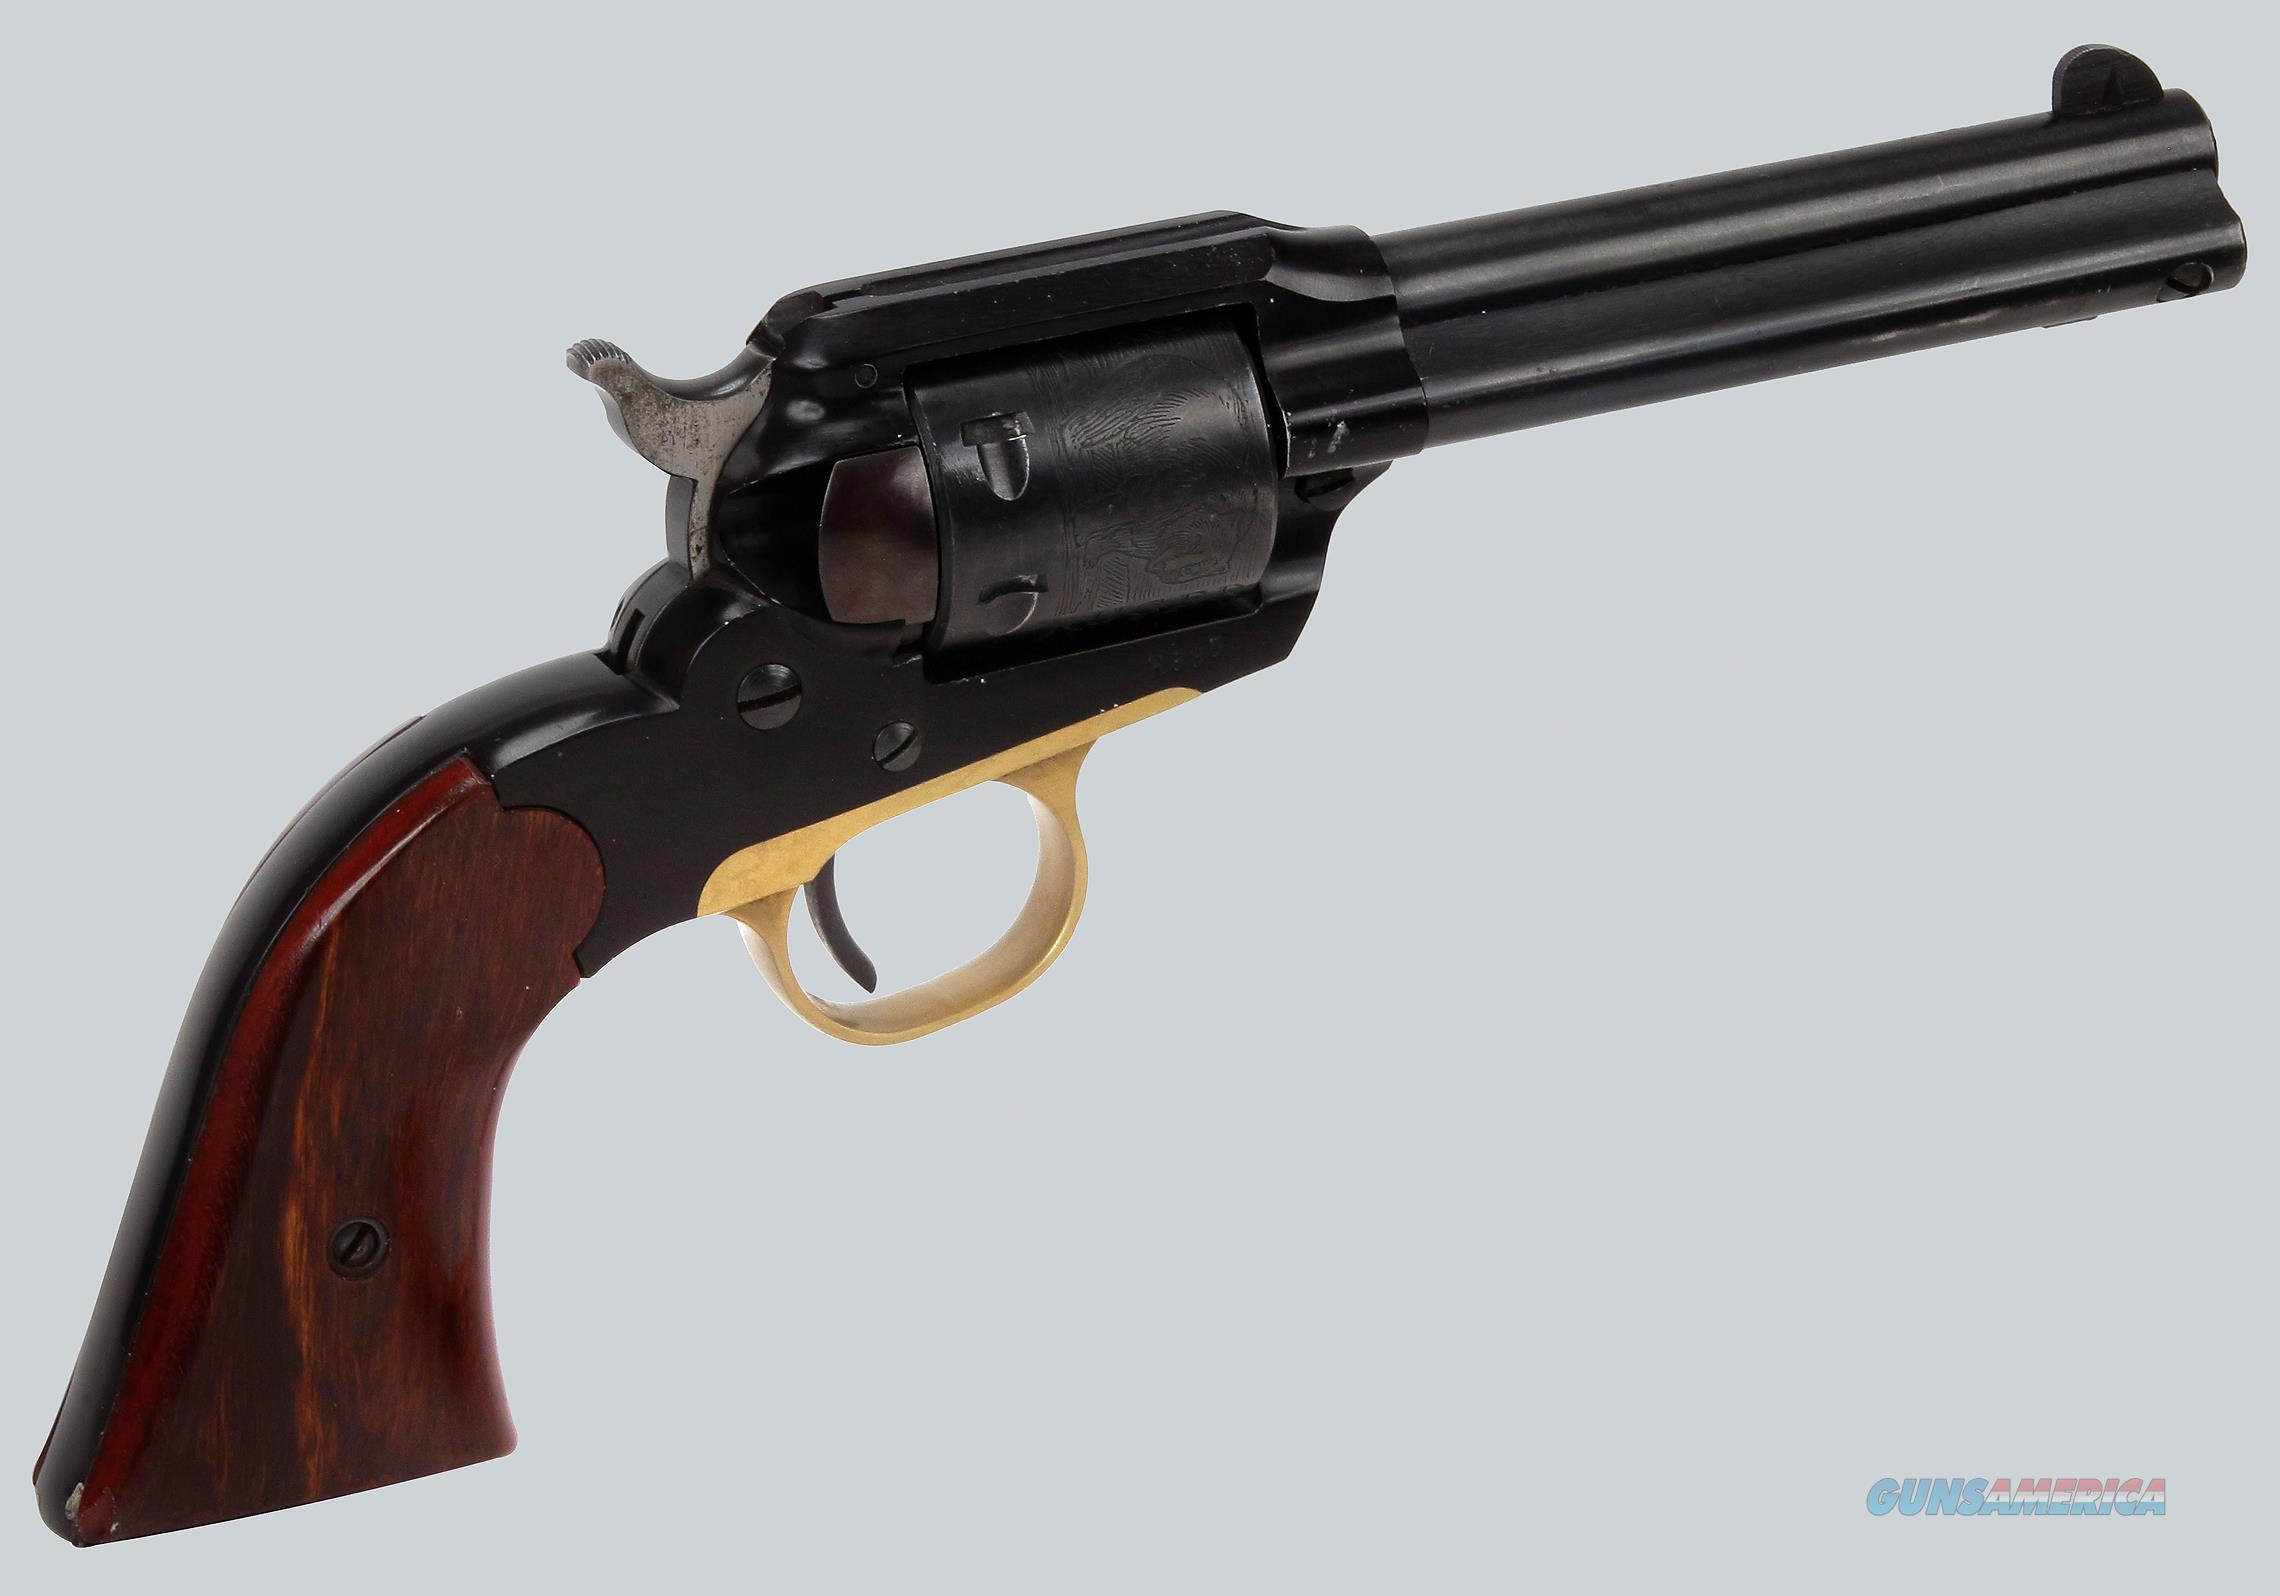 Ruger 22LR Bearcat Revolver  Guns > Pistols > Ruger Single Action Revolvers > Bearcat